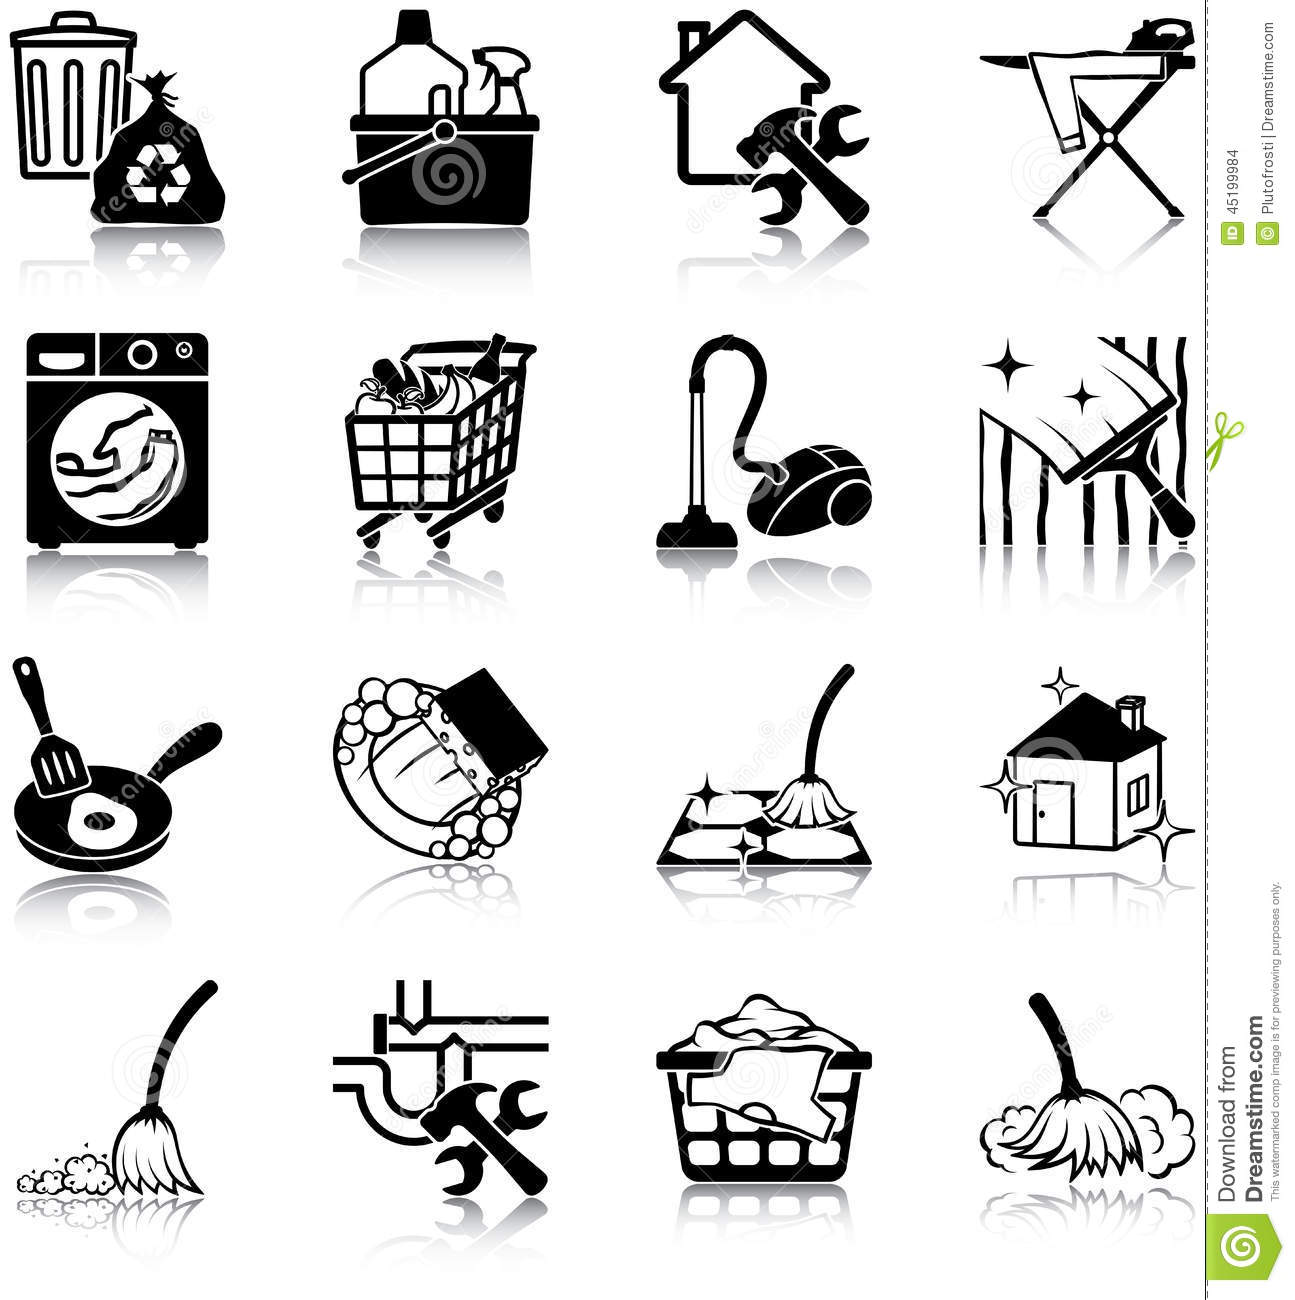 housekeeping cartoons  illustrations  u0026 vector stock images